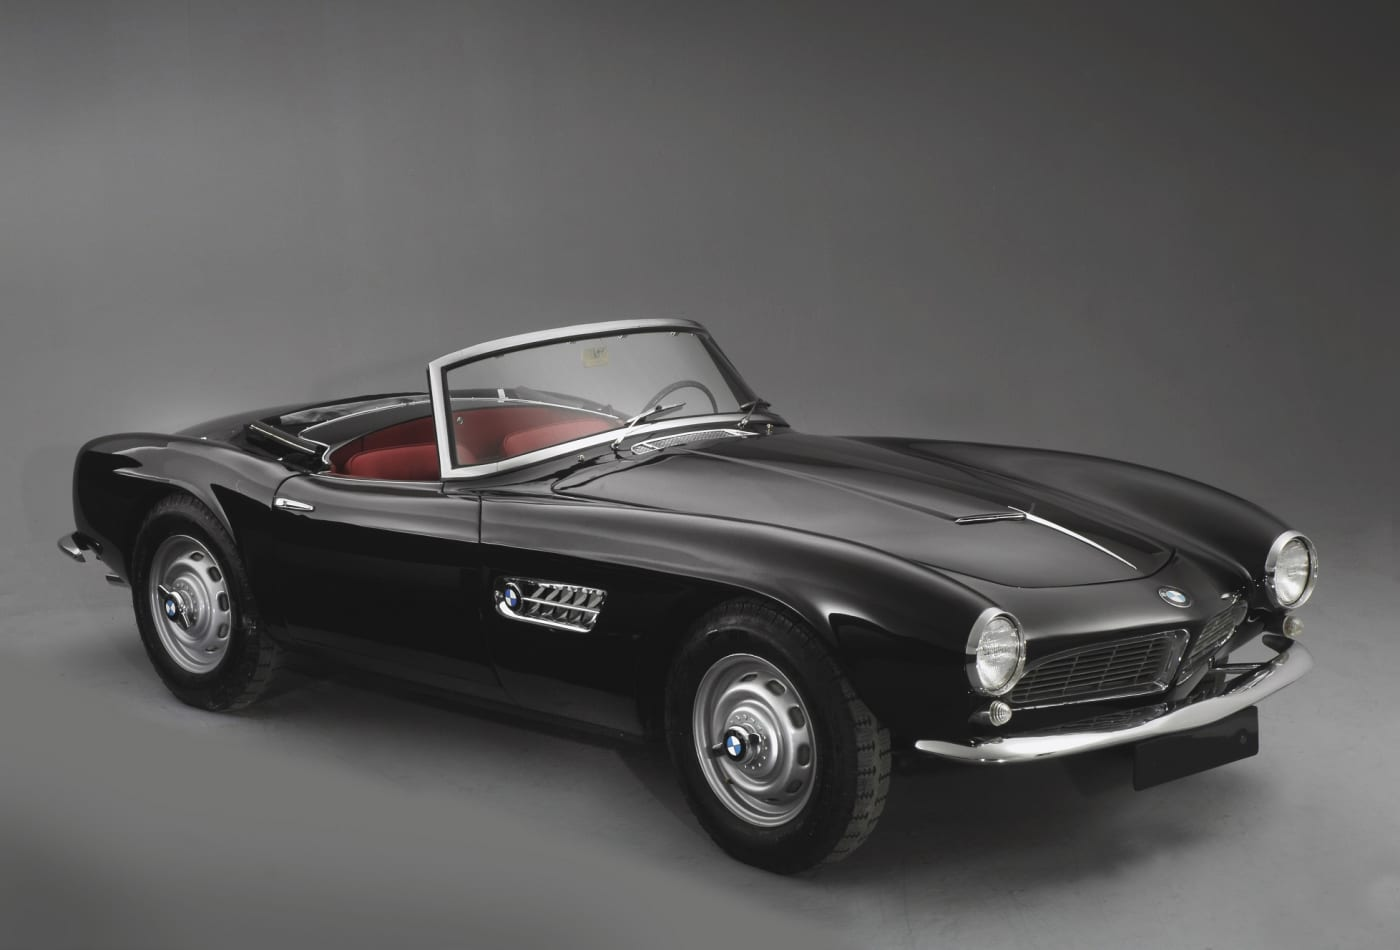 This 1950s roadster nearly bankrupted BMW, now the car sells for millions